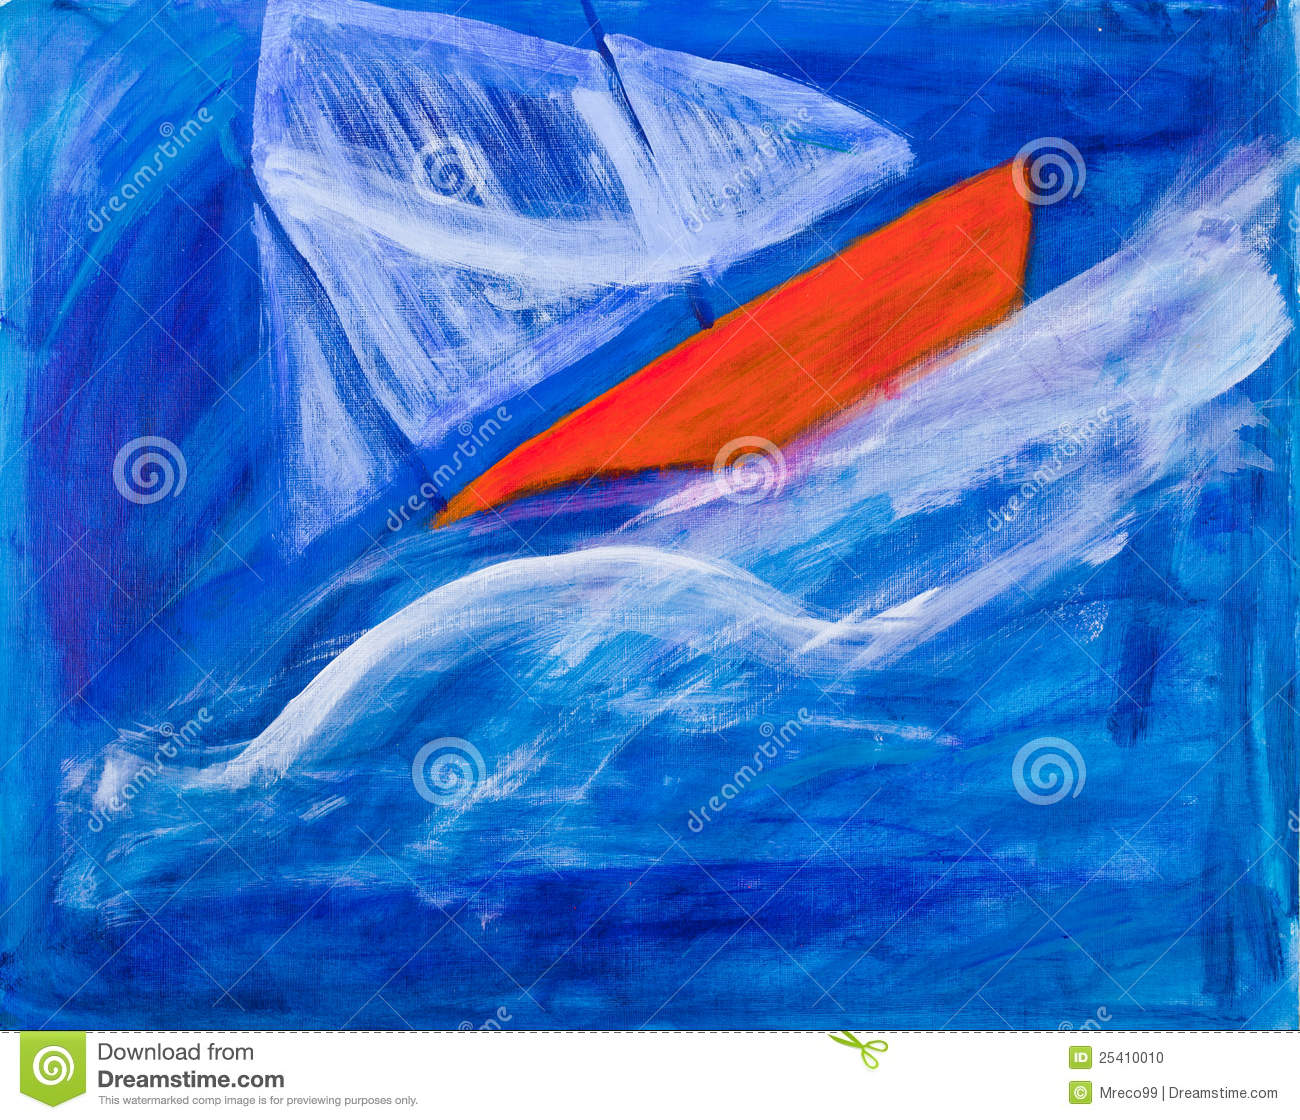 Sailing Boat Racing Painting By Kay Gale Stock Photo - Image: 25410010